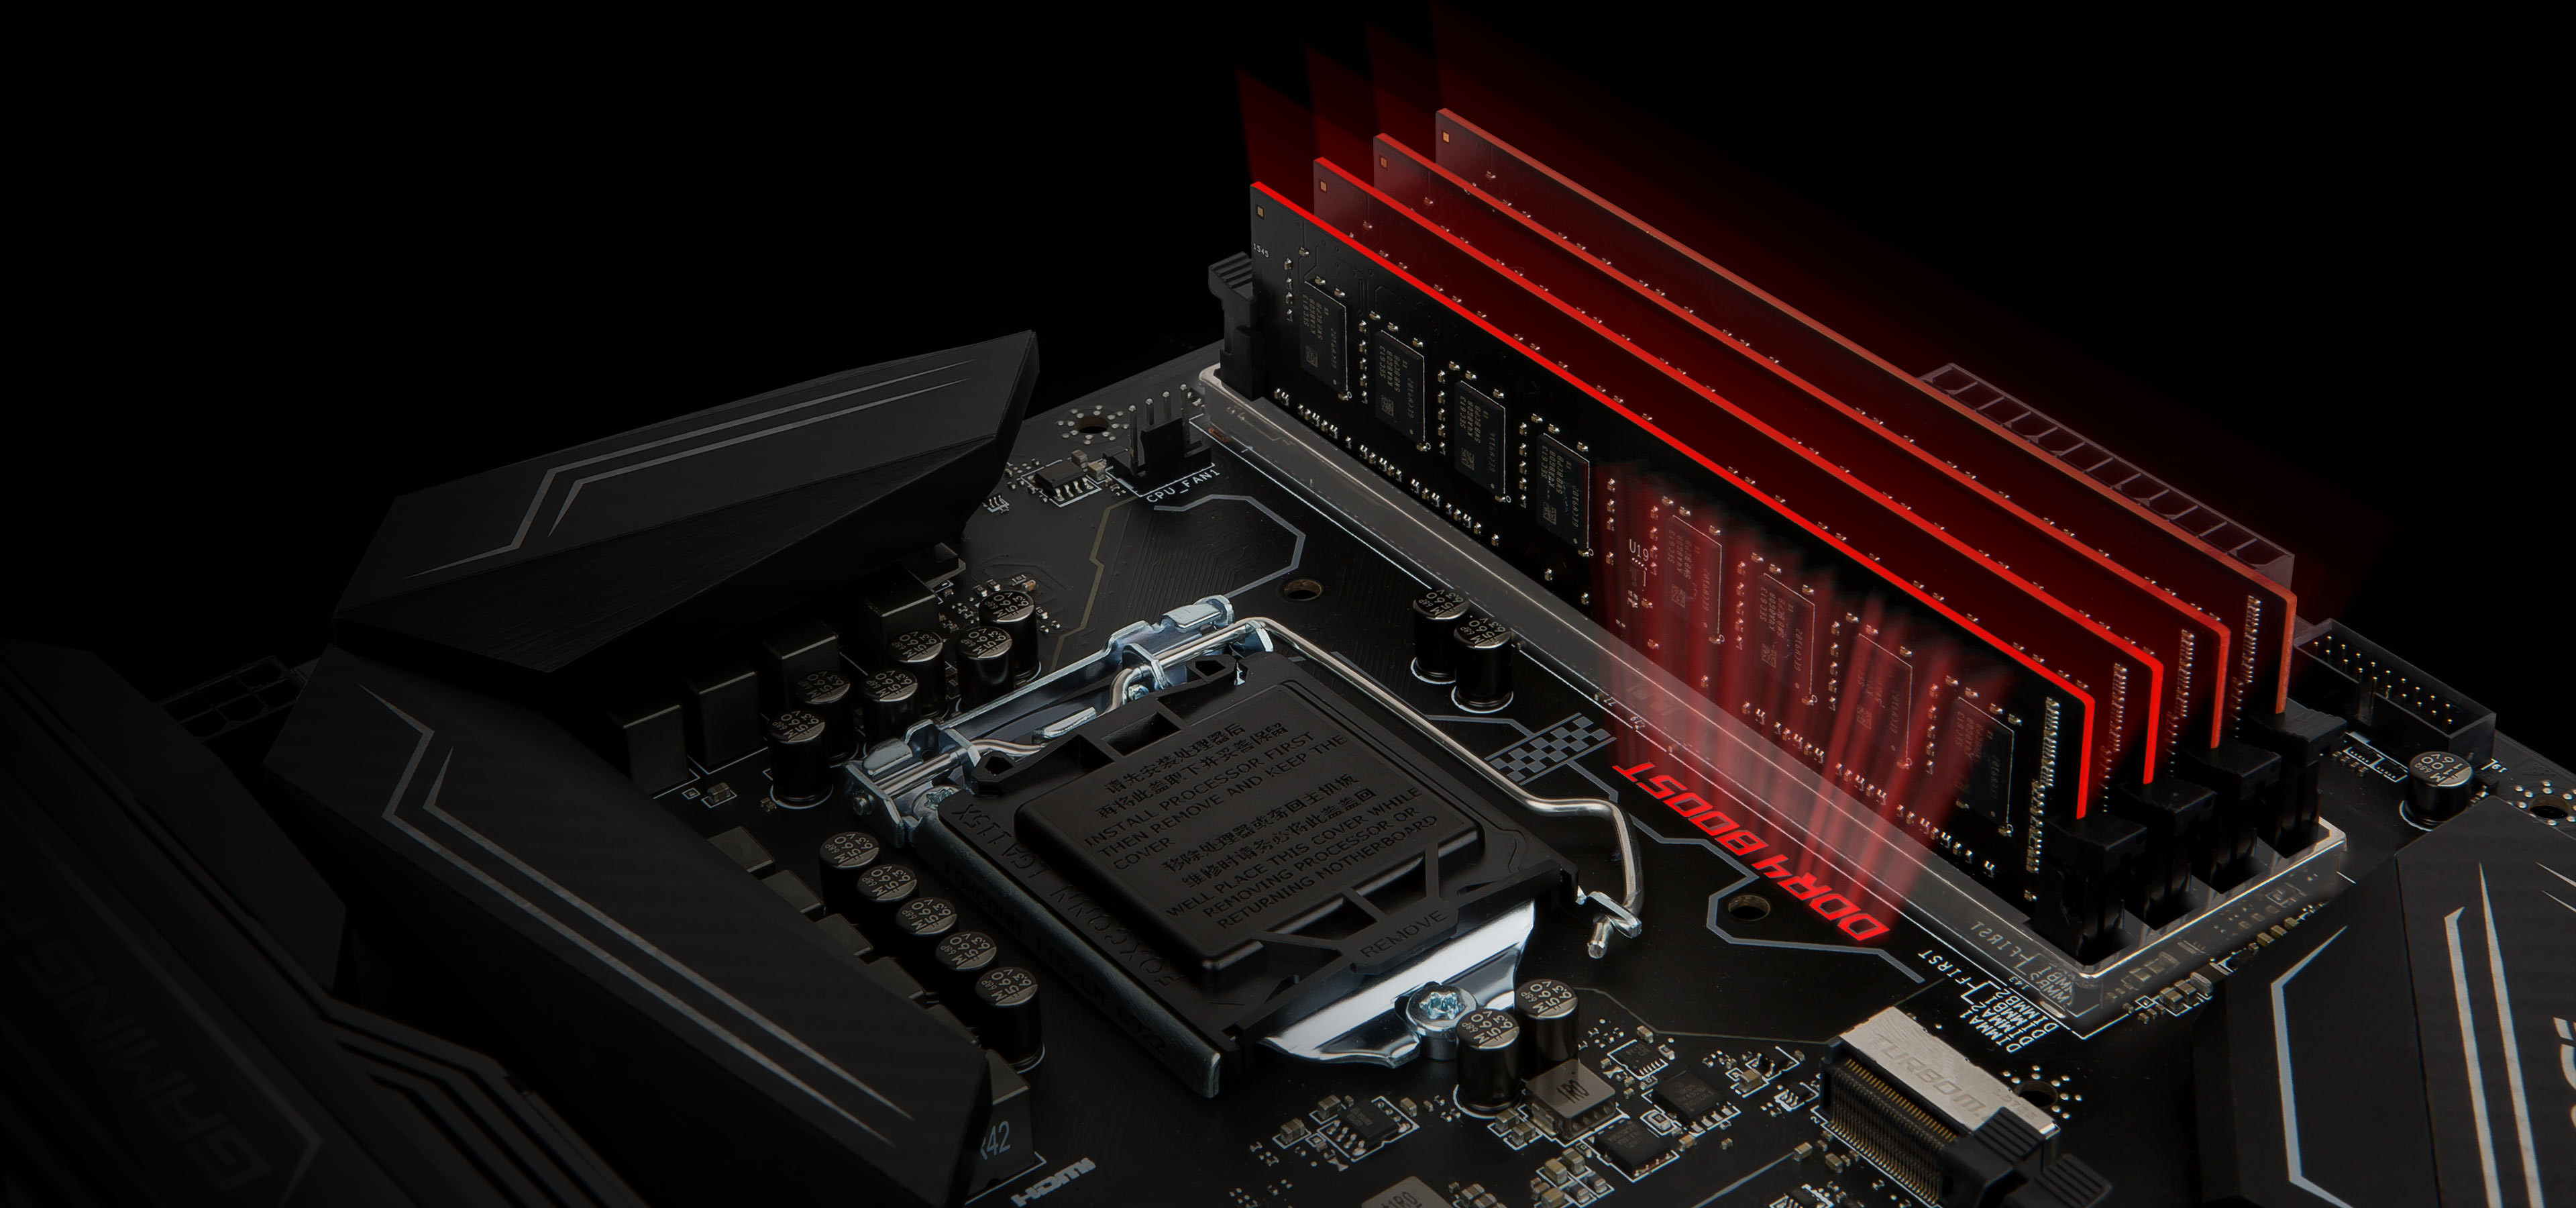 MSI motherboards are crammed with features to fuel your gaming rig's memory  with more speed, higher overclockability and increased stability.